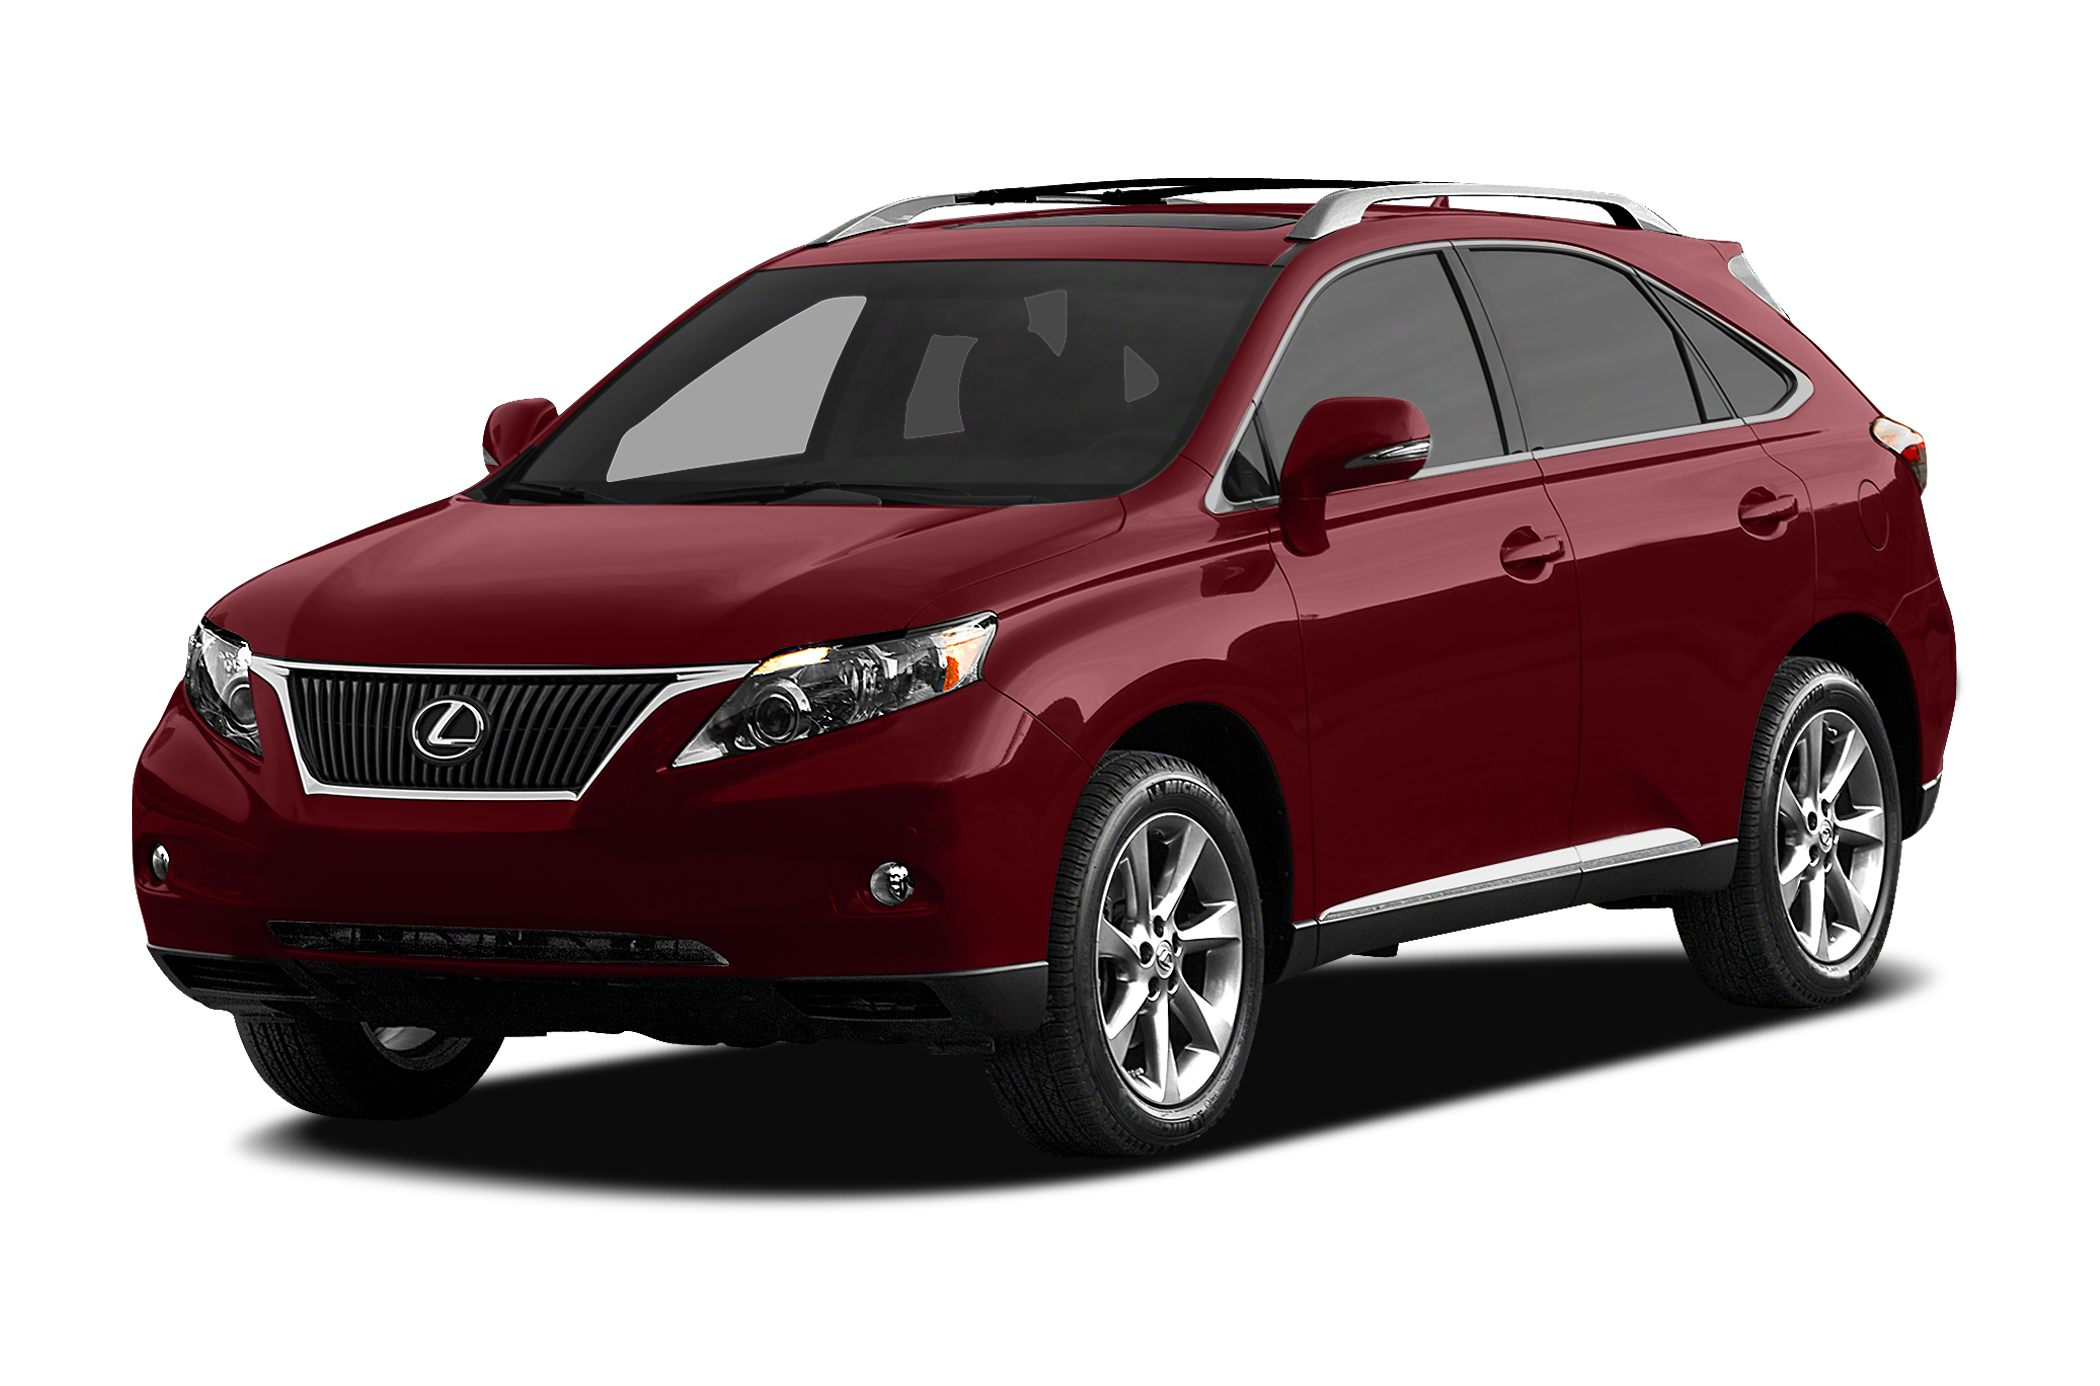 2012 Lexus RX 350 Base SUV for sale in Kennewick for $37,201 with 28,374 miles.